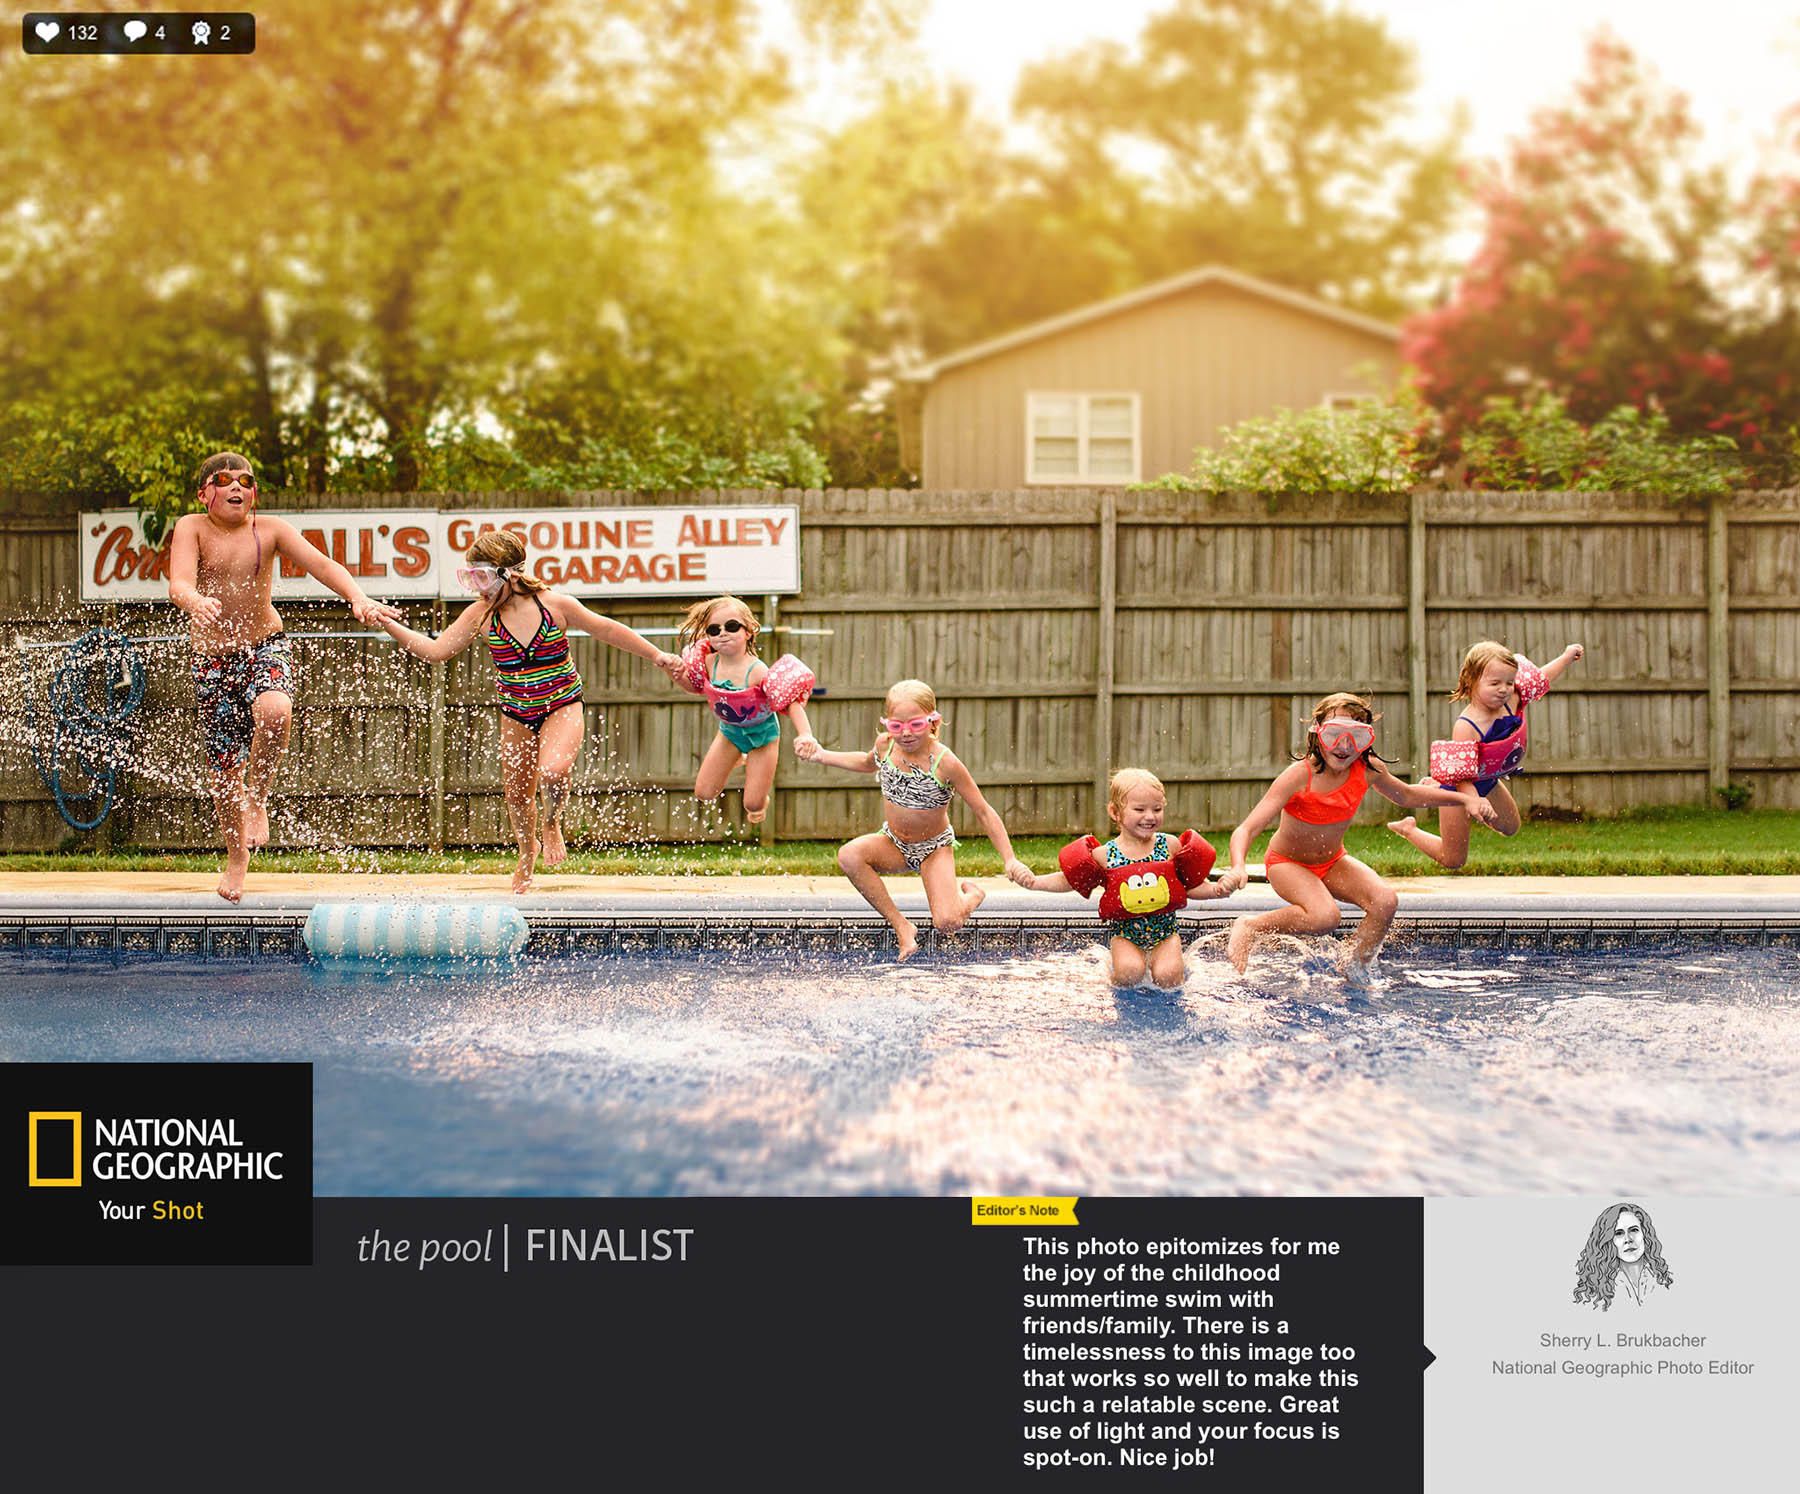 ONLINE - National Geographic Daily Dozen — March 1, 2019 // LINKNational Geographic Daily Dozen — September 14, 2018 // LINKNational Geographic Editors' Spotlight — July 13, 2018 // LINKNational Geographic Pool Story — August 10, 2015 // LINK